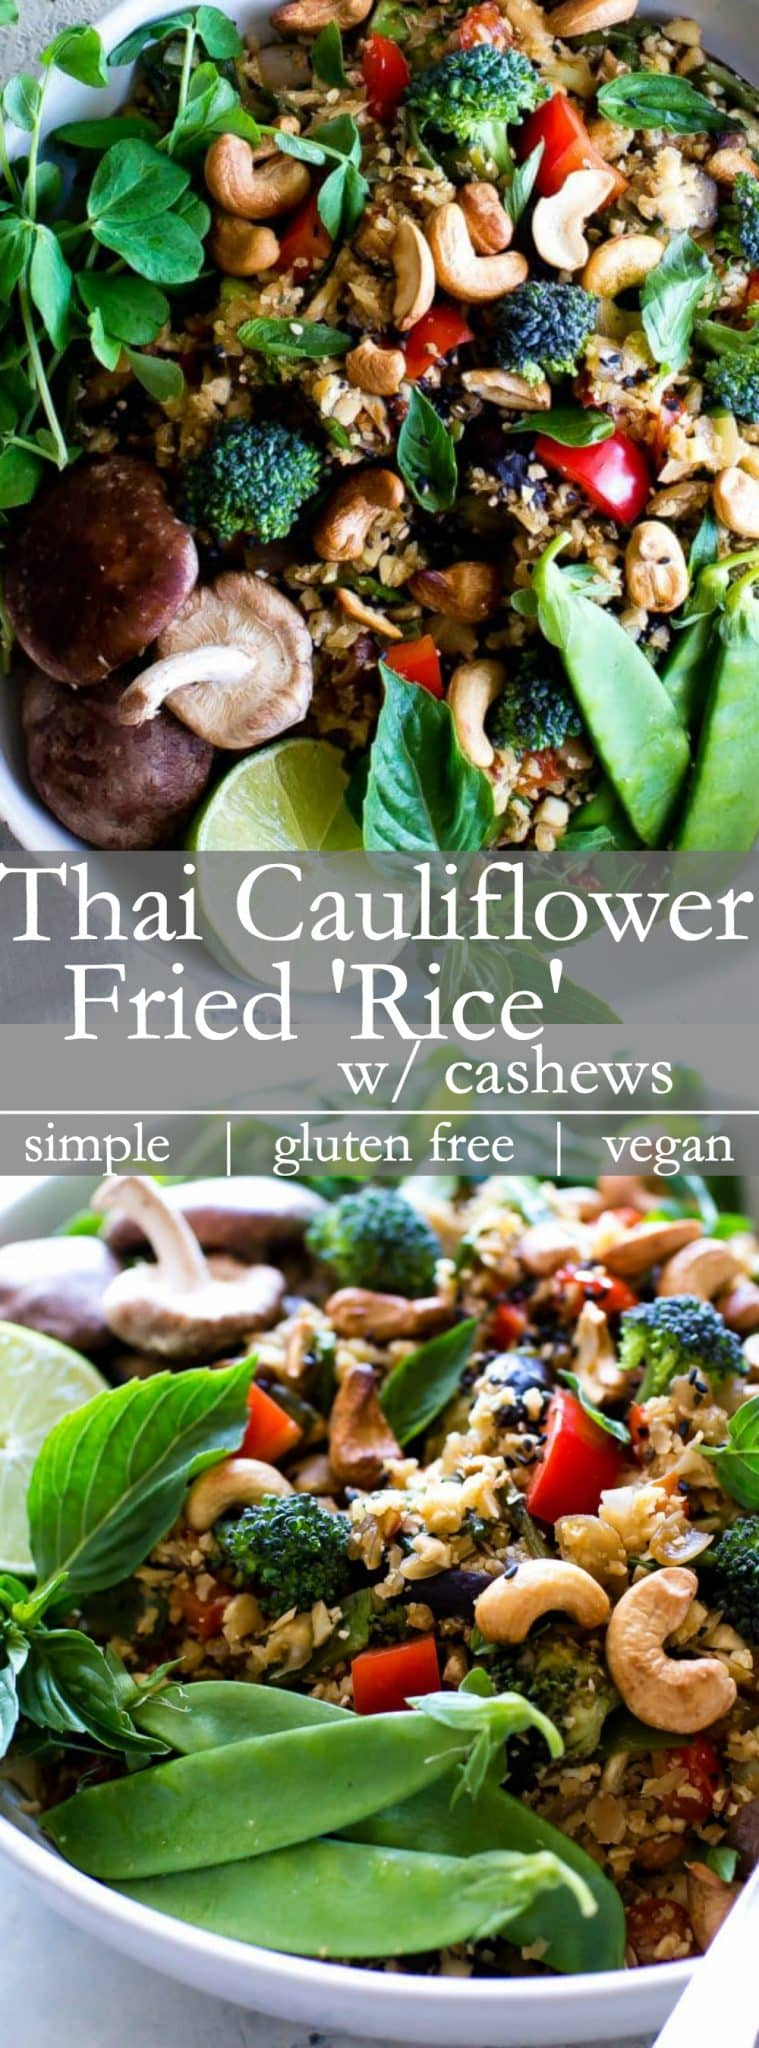 Vibrant, nourishing, and packed with umami flavors, Thai Vegetable Cauliflower Fried Rice with Cashews comes together with ease and makes a hearty Thai inspired dinner. Top it with an optional fried egg or prepared tofu to stretch this main further. #Vegetarian #cauliflowerRice #ThaiFriedCauliflowerRice #Dinner #HealthyDinner #Vegan #GlutenFree